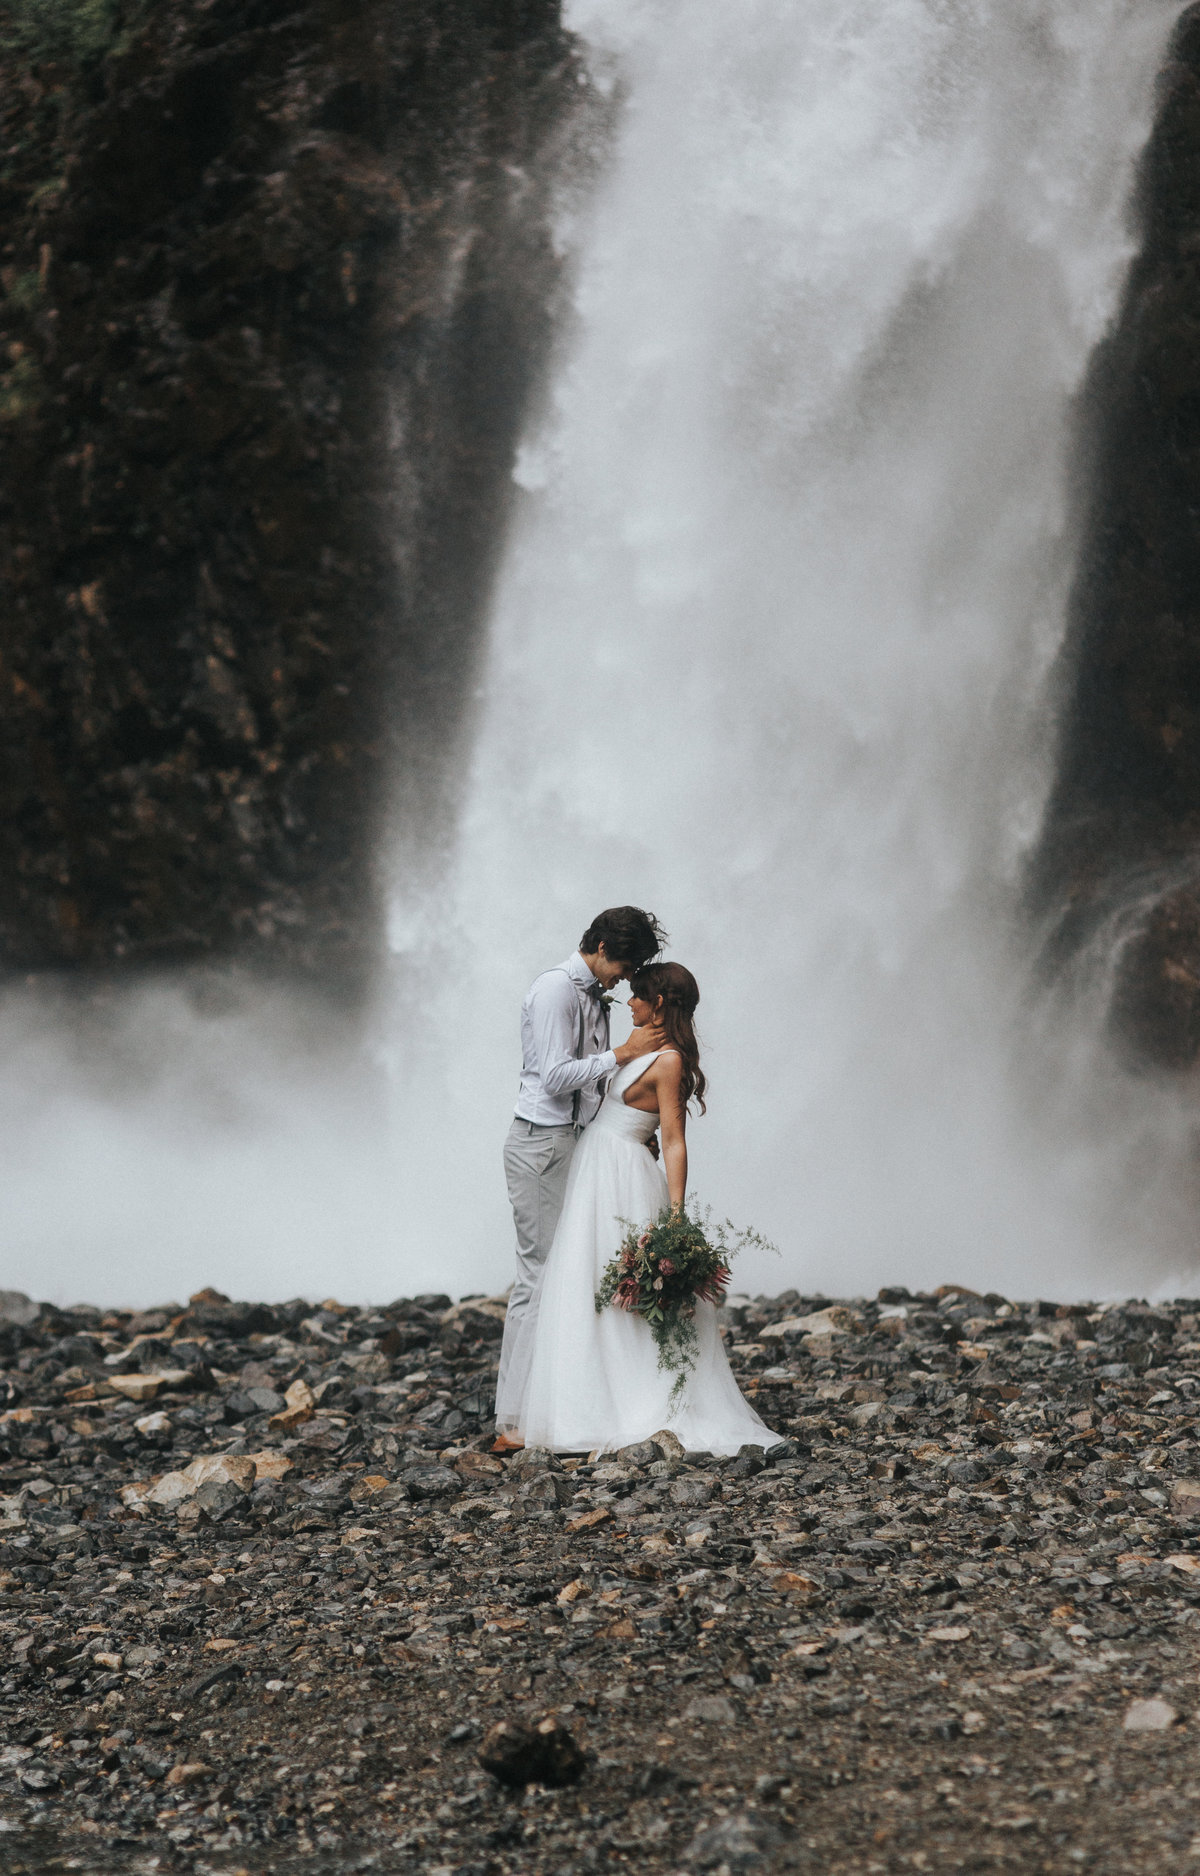 Waterfall portrait of a bride and groom in Seattle, Washington.